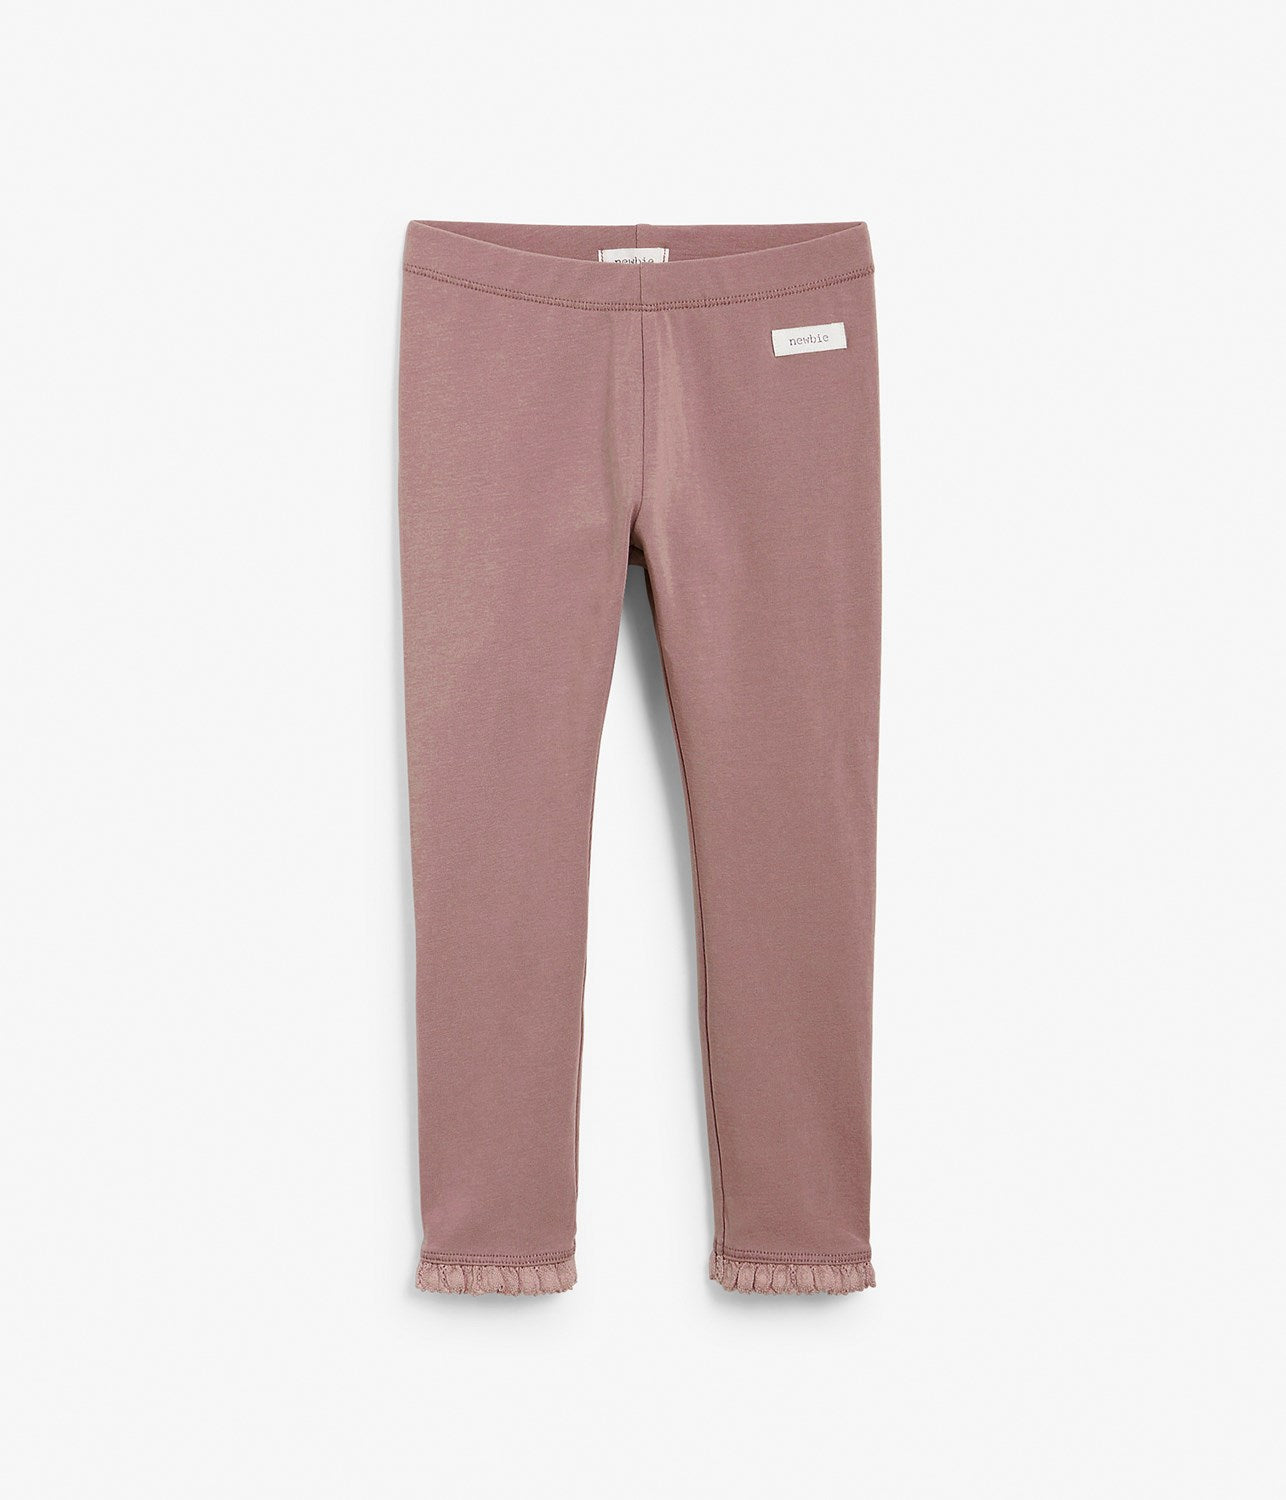 Kids pink leggings with frills